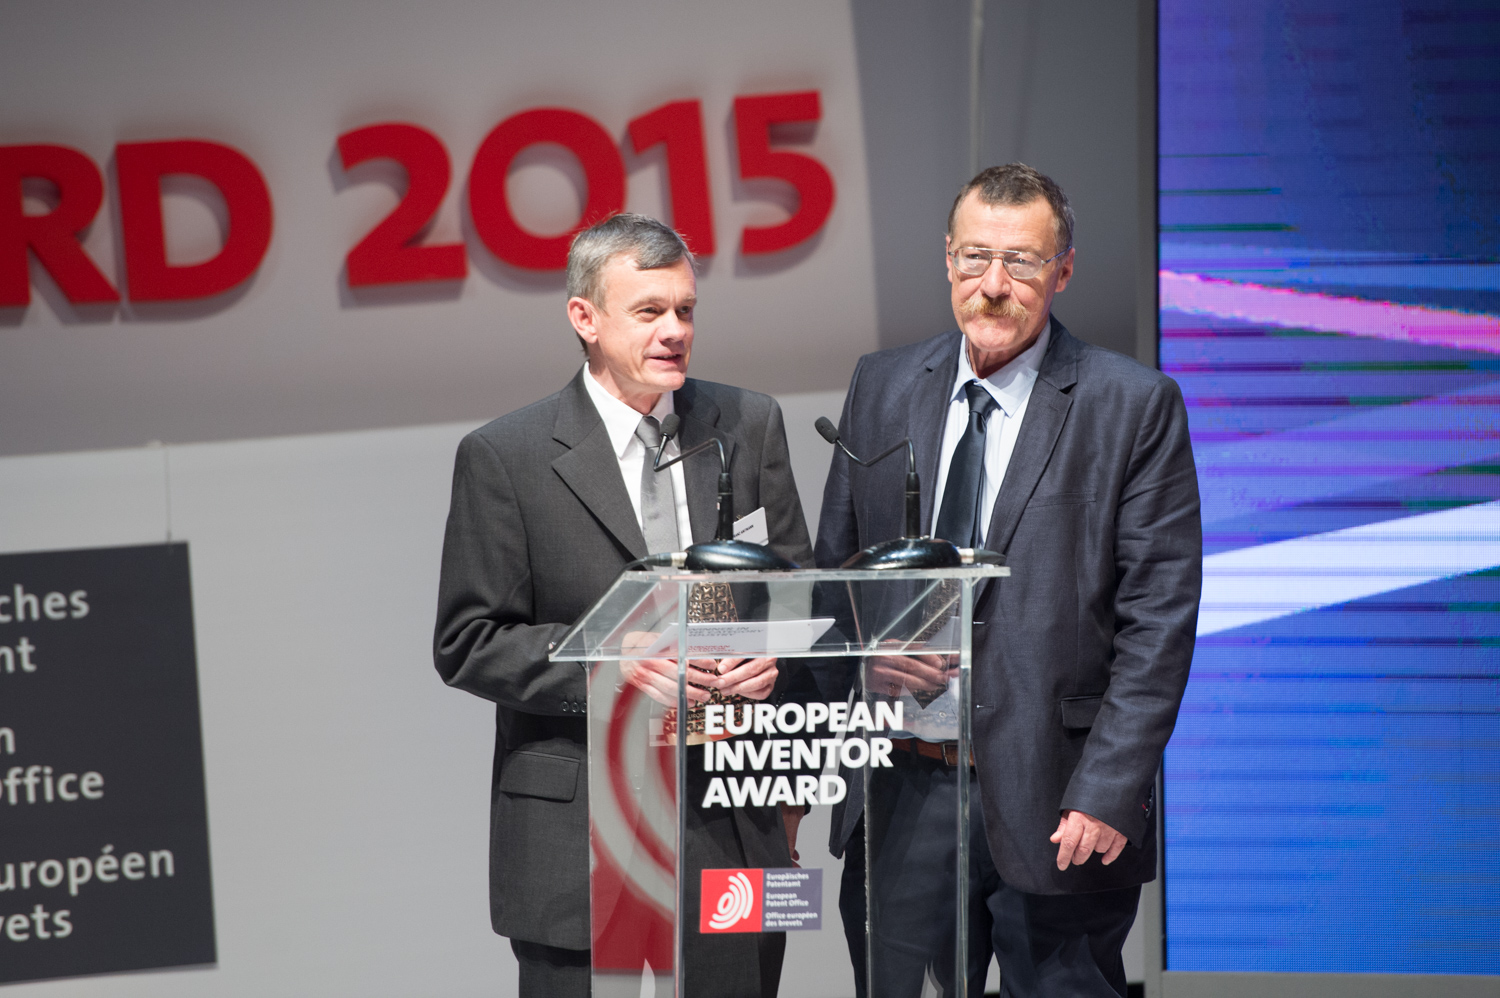 Franz Amtmann (Austria) and Philippe Maugars (France), winners of the European Inventor Award 2015 in the Industry category, at the ceremony at the Palais Brongniart in Paris on 11 June.